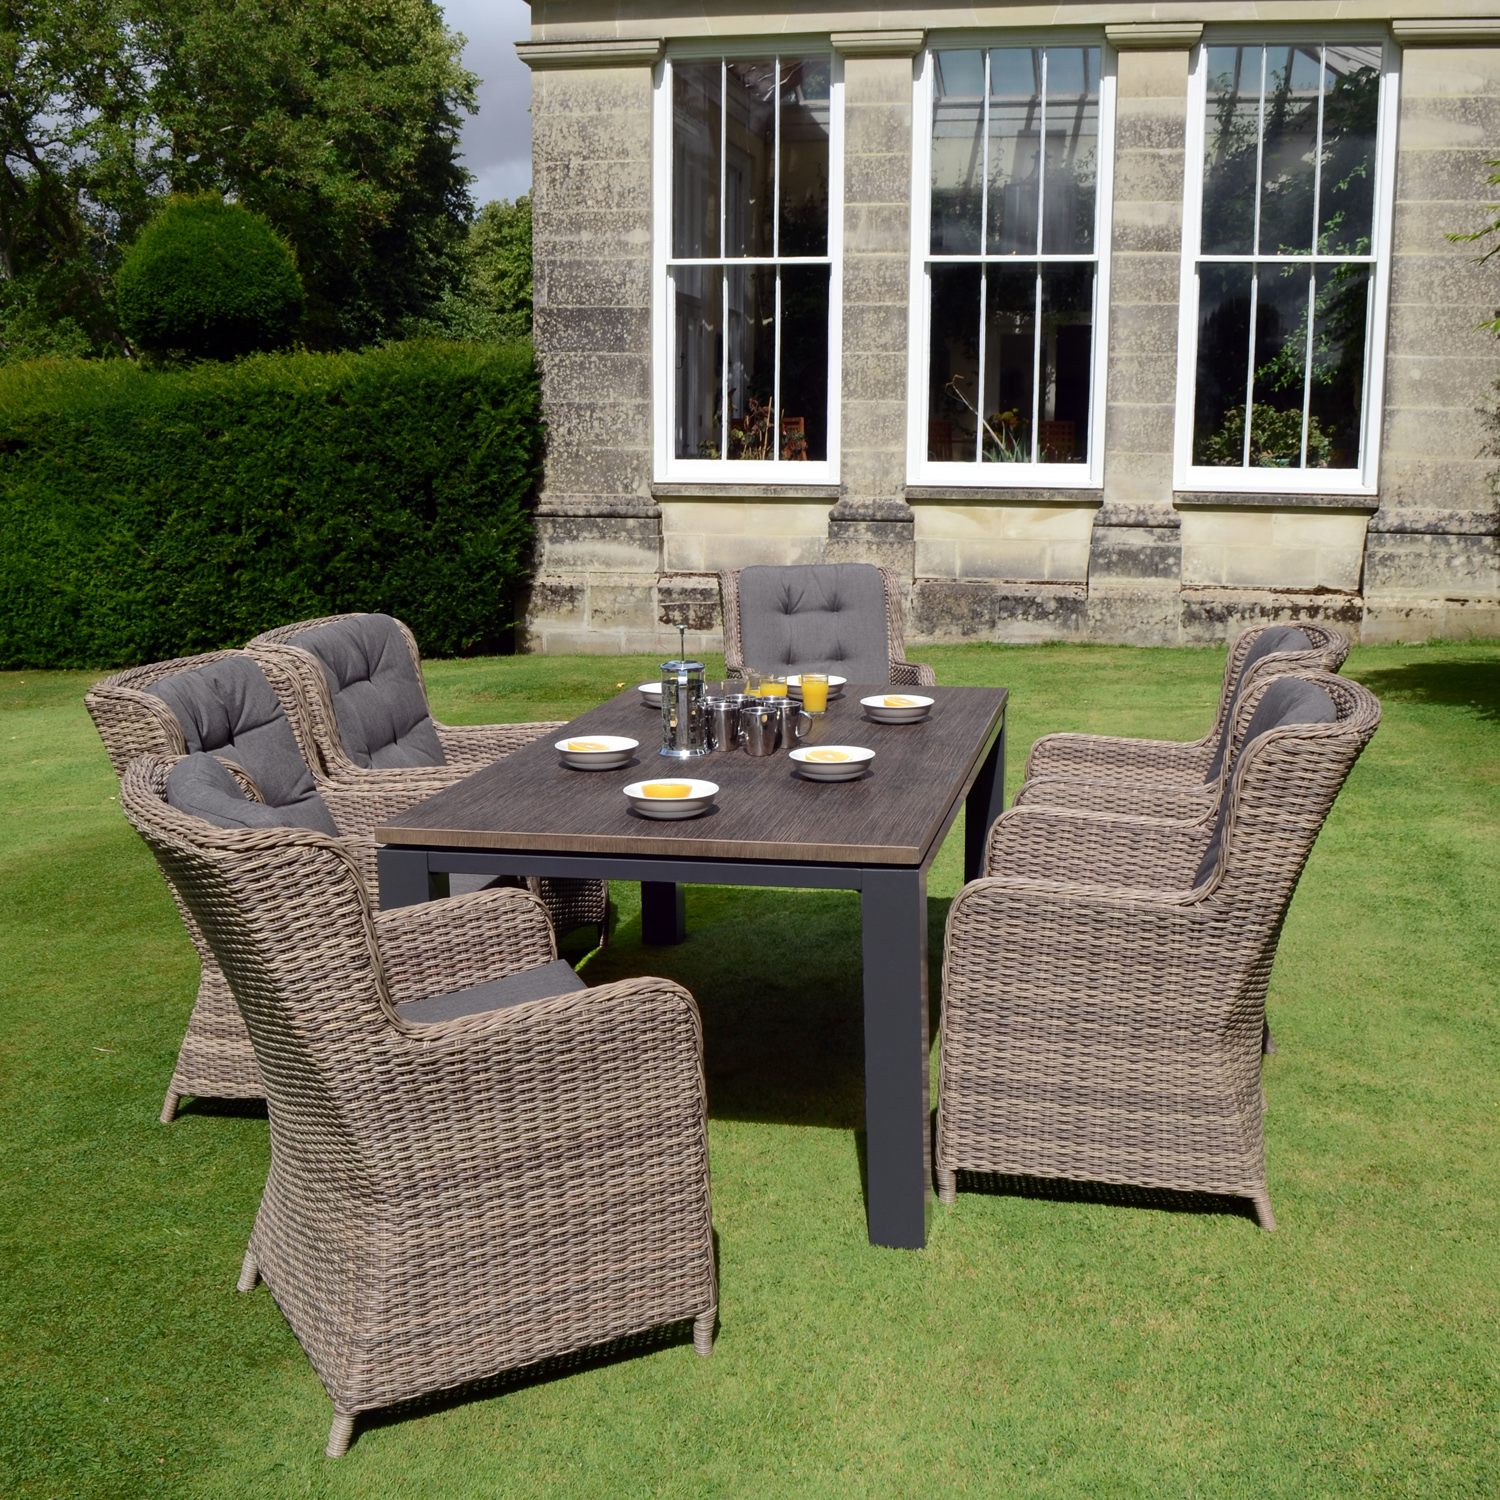 Terrific Lulworth  Seat Set With Engaging Lulworth Set With Awesome Rothley Garden Centre Also Tidy Gardens In Addition Arcadian Gardens Surgery And The Garden Club As Well As Small Garden Statues Additionally Garden Water Tanks From Greenferngardenfurniturecouk With   Engaging Lulworth  Seat Set With Awesome Lulworth Set And Terrific Rothley Garden Centre Also Tidy Gardens In Addition Arcadian Gardens Surgery From Greenferngardenfurniturecouk